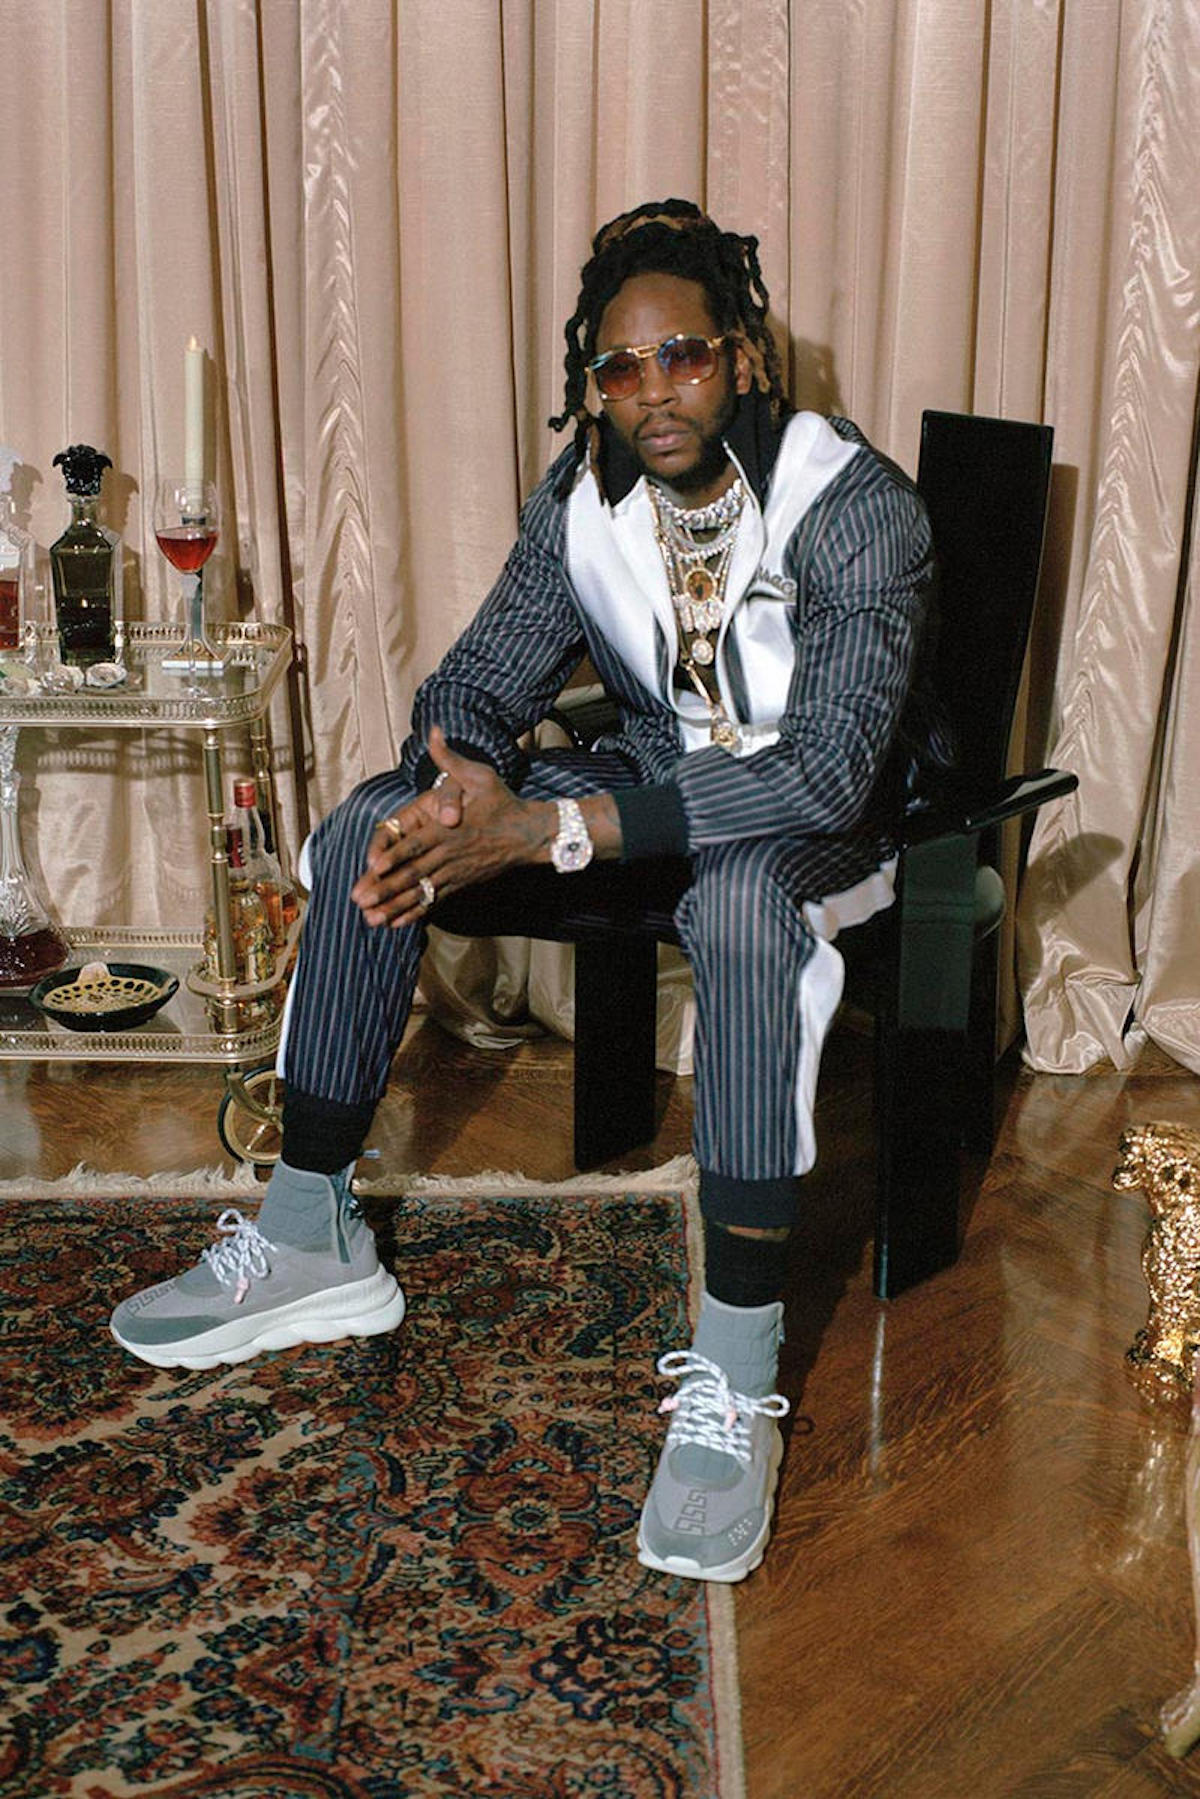 Versace & 2 Chainz Team up for Collaborative Capsule Collection